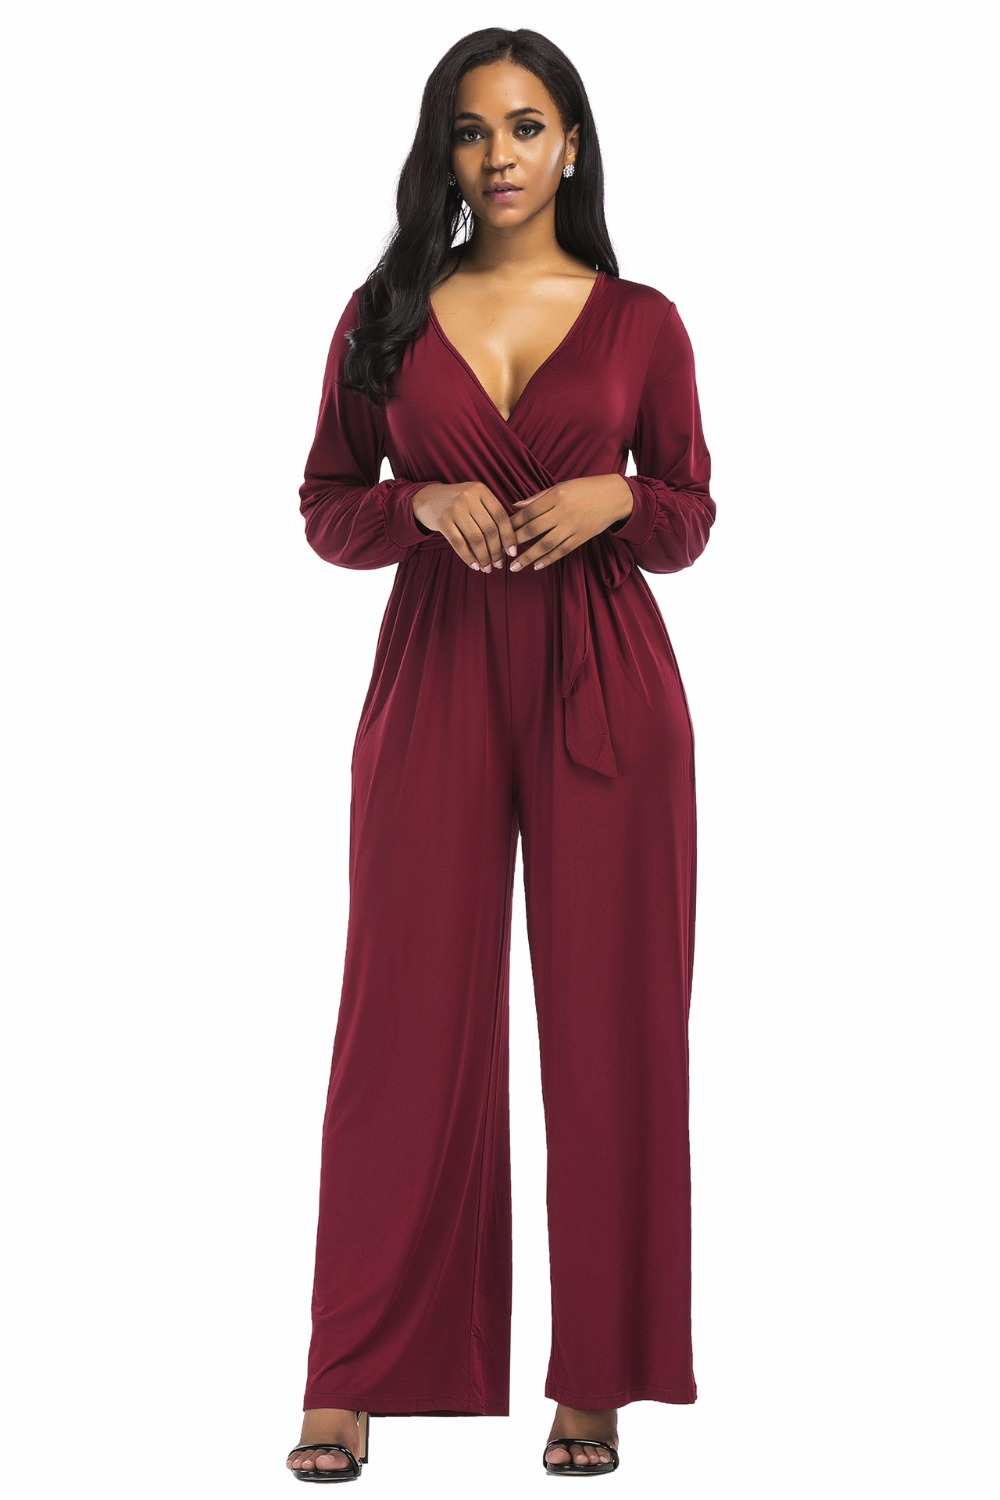 7603e2aab1ae Loose Wide Leg Women Jumpsuit Sexy Club Stretch Female Siamese Trousers  Long Sleeve V Neck Bodysuit Solid Elastic Waist Rompers